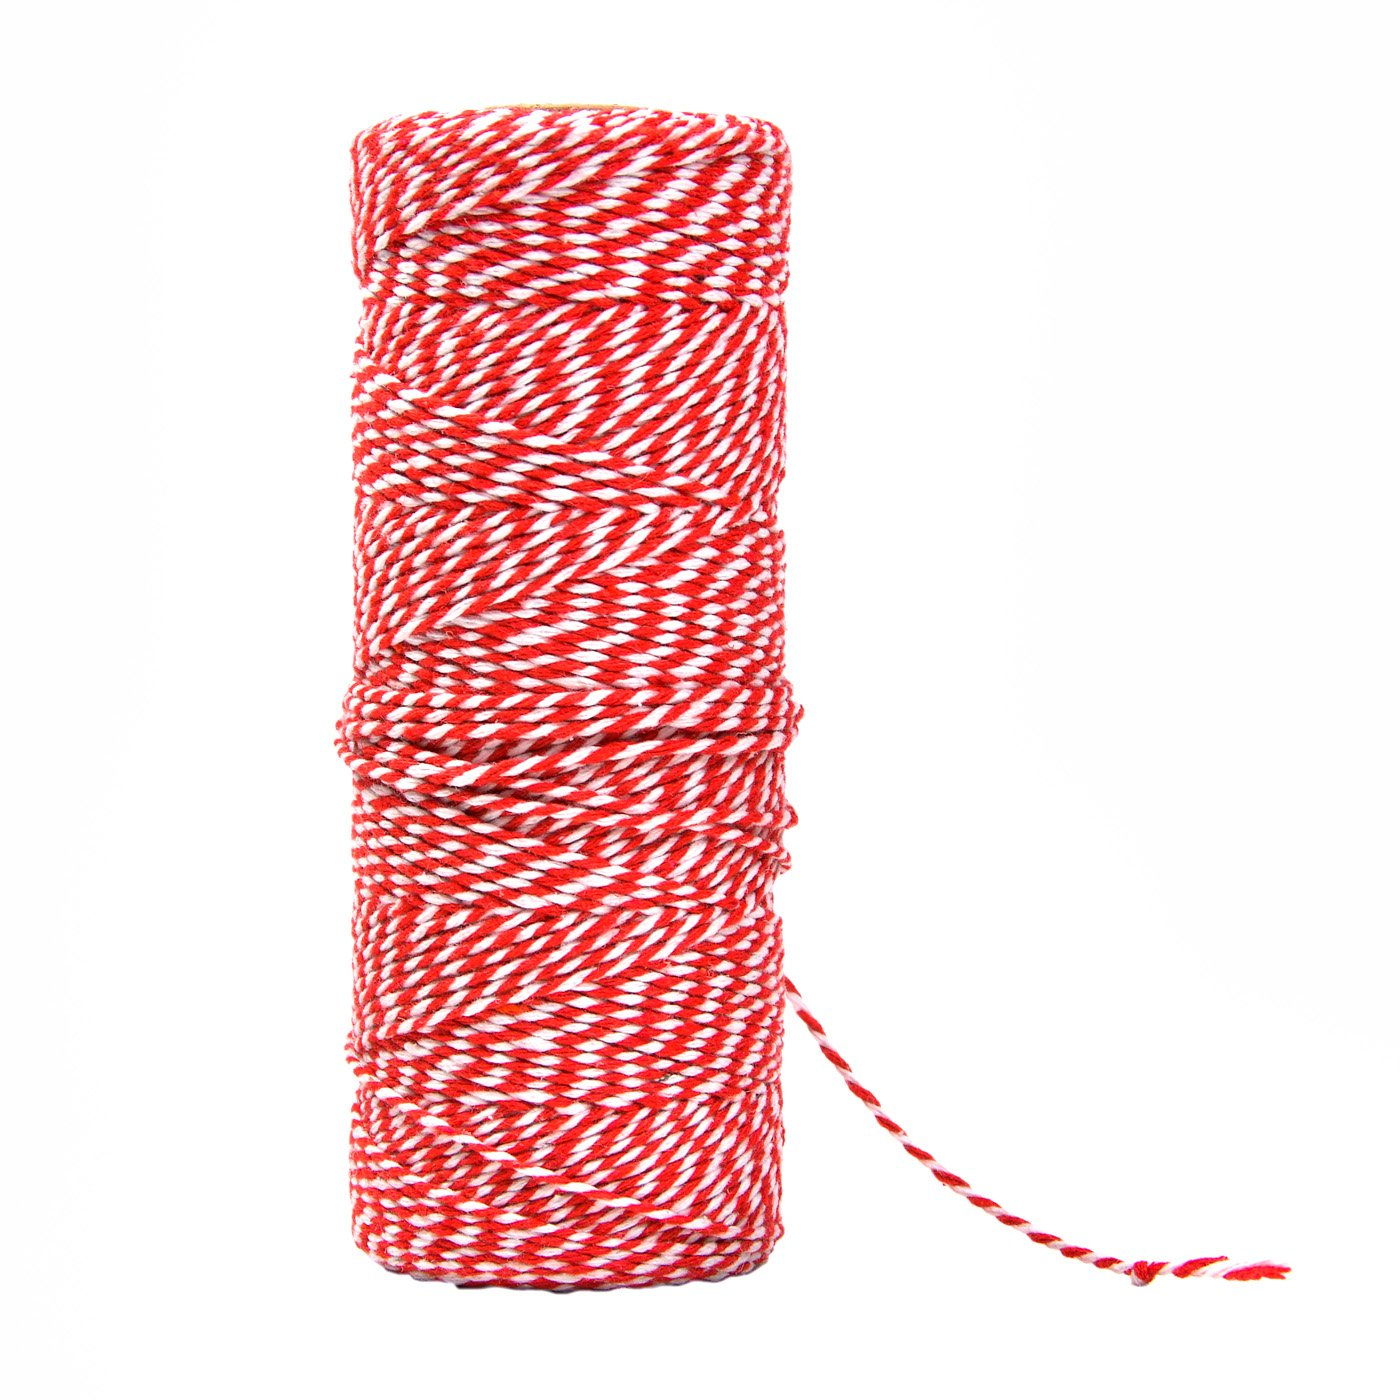 Bakers Twine Red and White String 2 mm, Packing Twine String for Gifts Wrapping And Gardening Applications Yolito